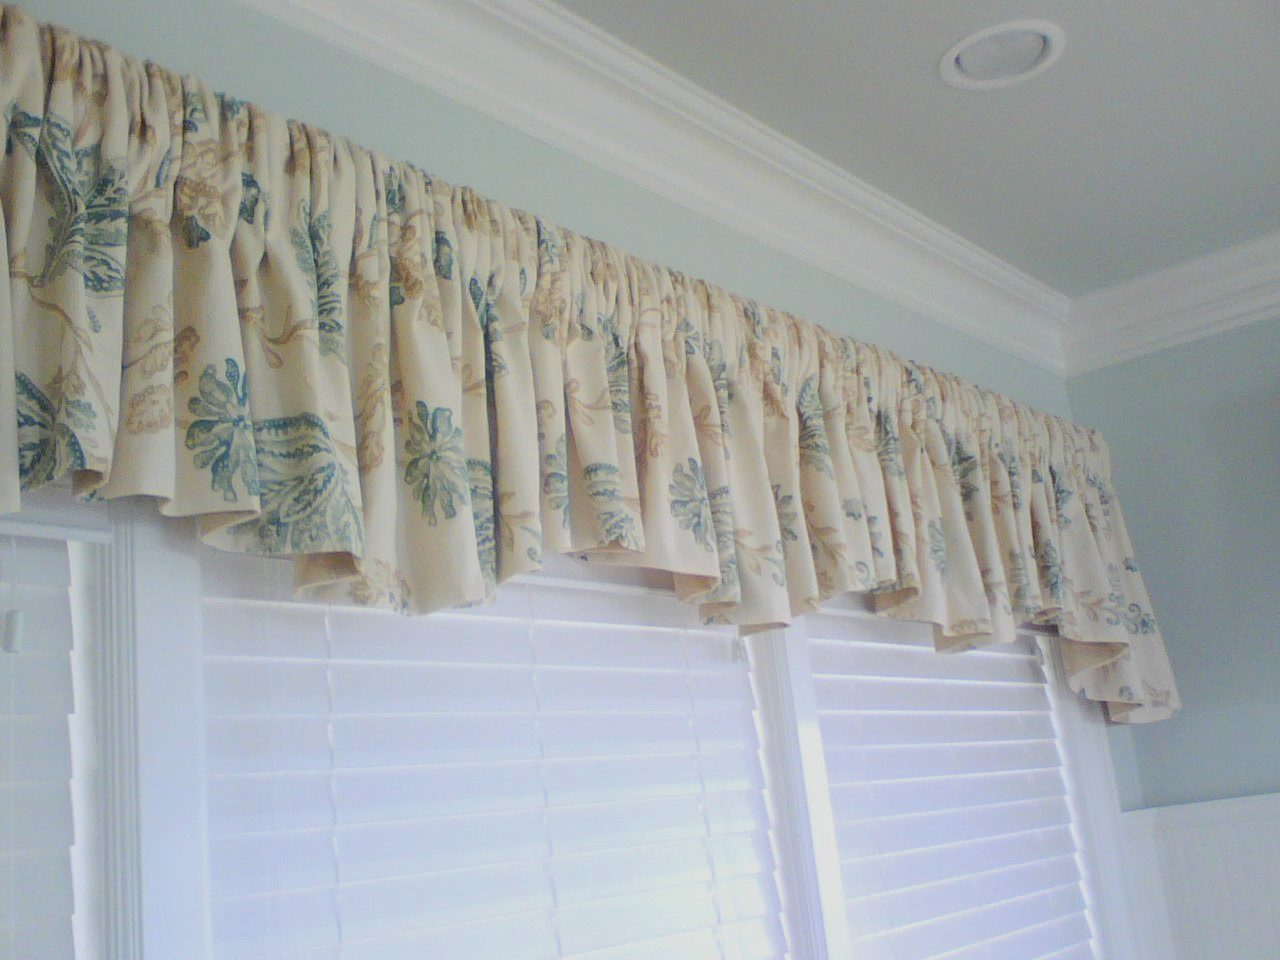 Shirred Rod Pocket Valance